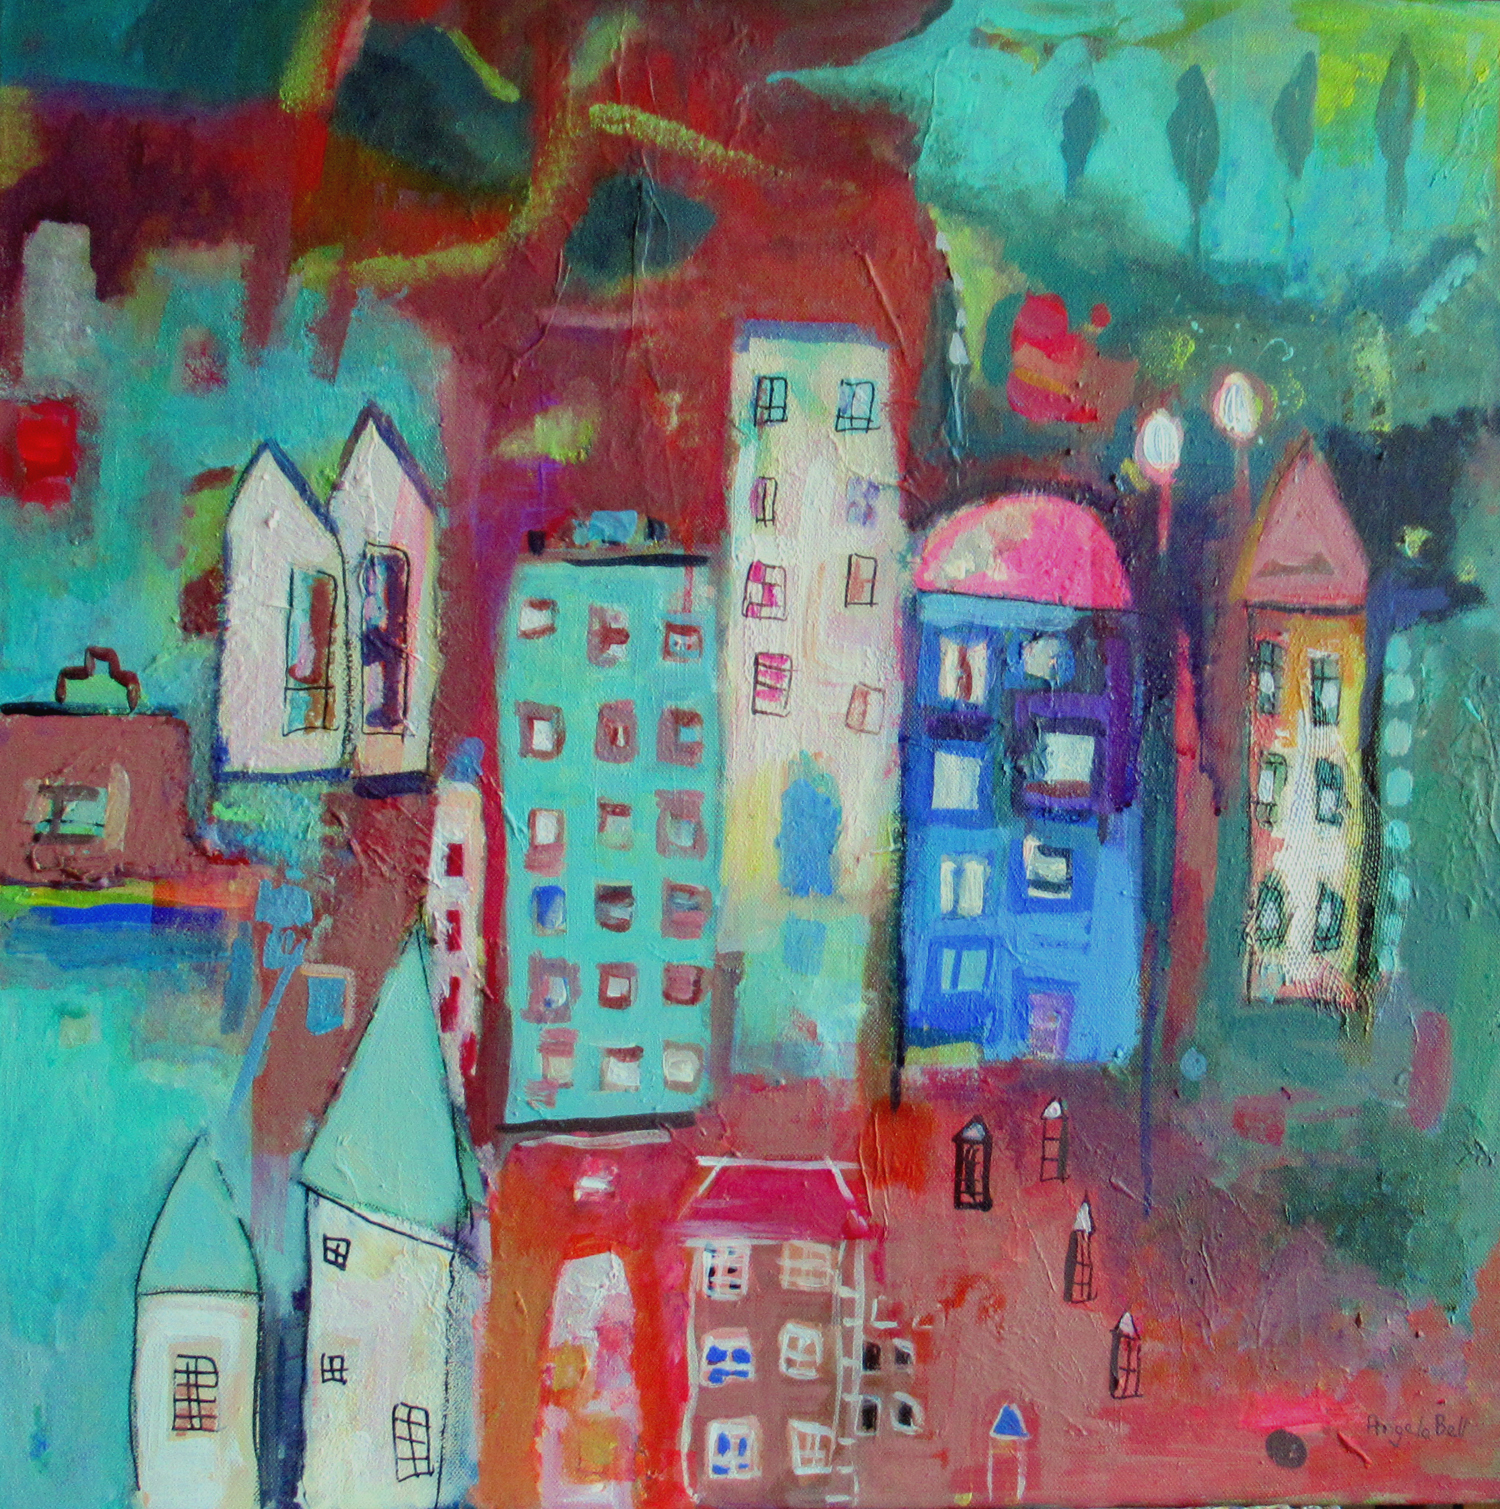 Angela Bell - Higgledypiggledy - Mixed Media - 60 x 60 box canvas - £315